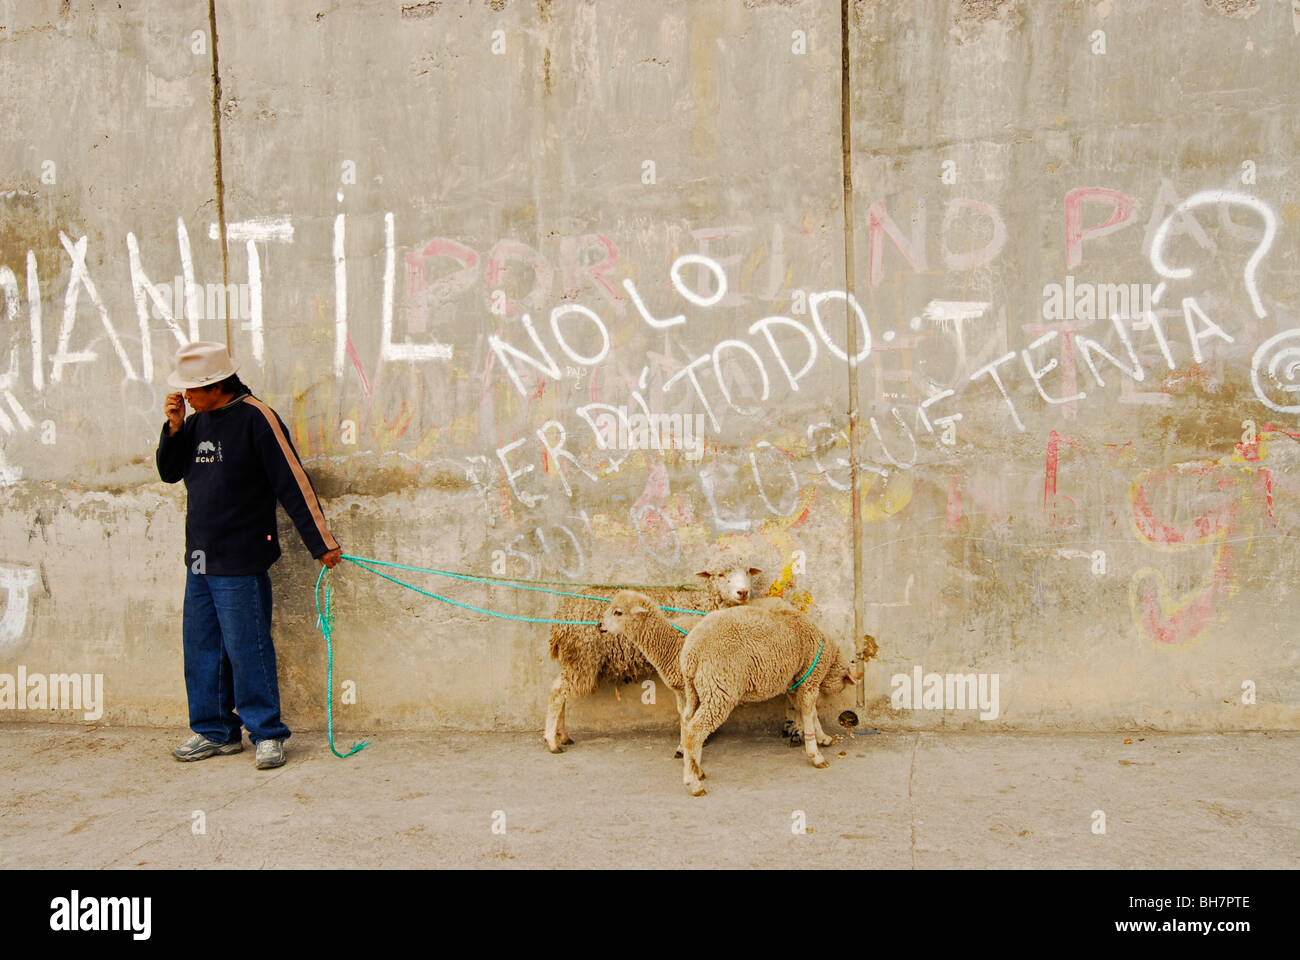 Ecuador, Otavalo, view of a local man standing against wall with white graffitis holding two white sheeps tied up Stock Photo